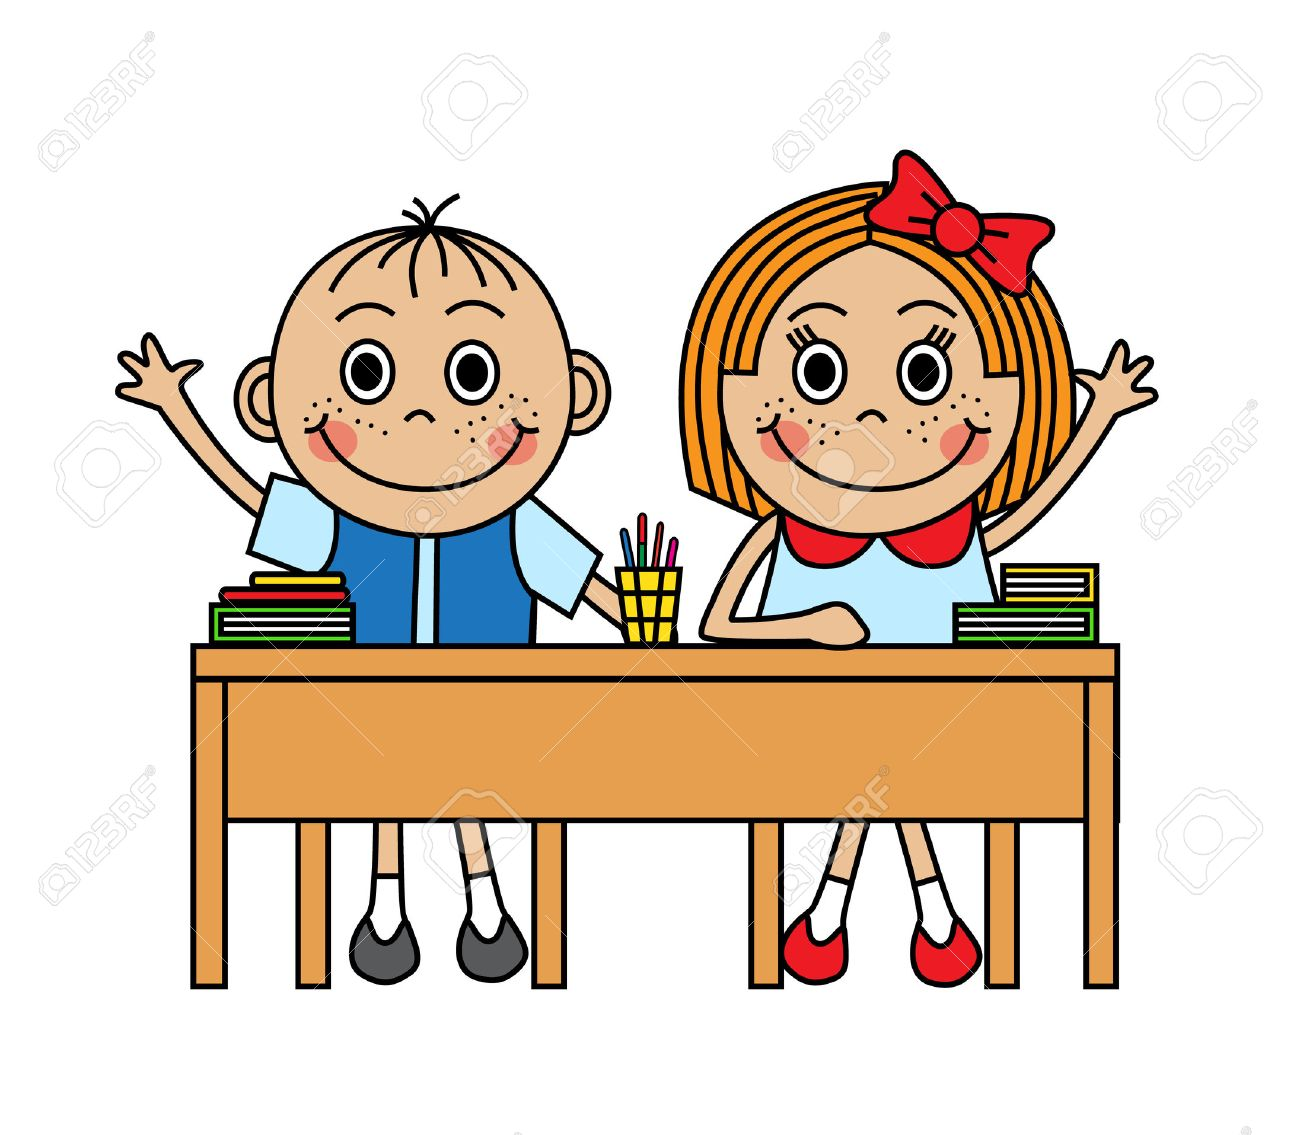 Cartoon children sitting at school desk and pull hand to answer.